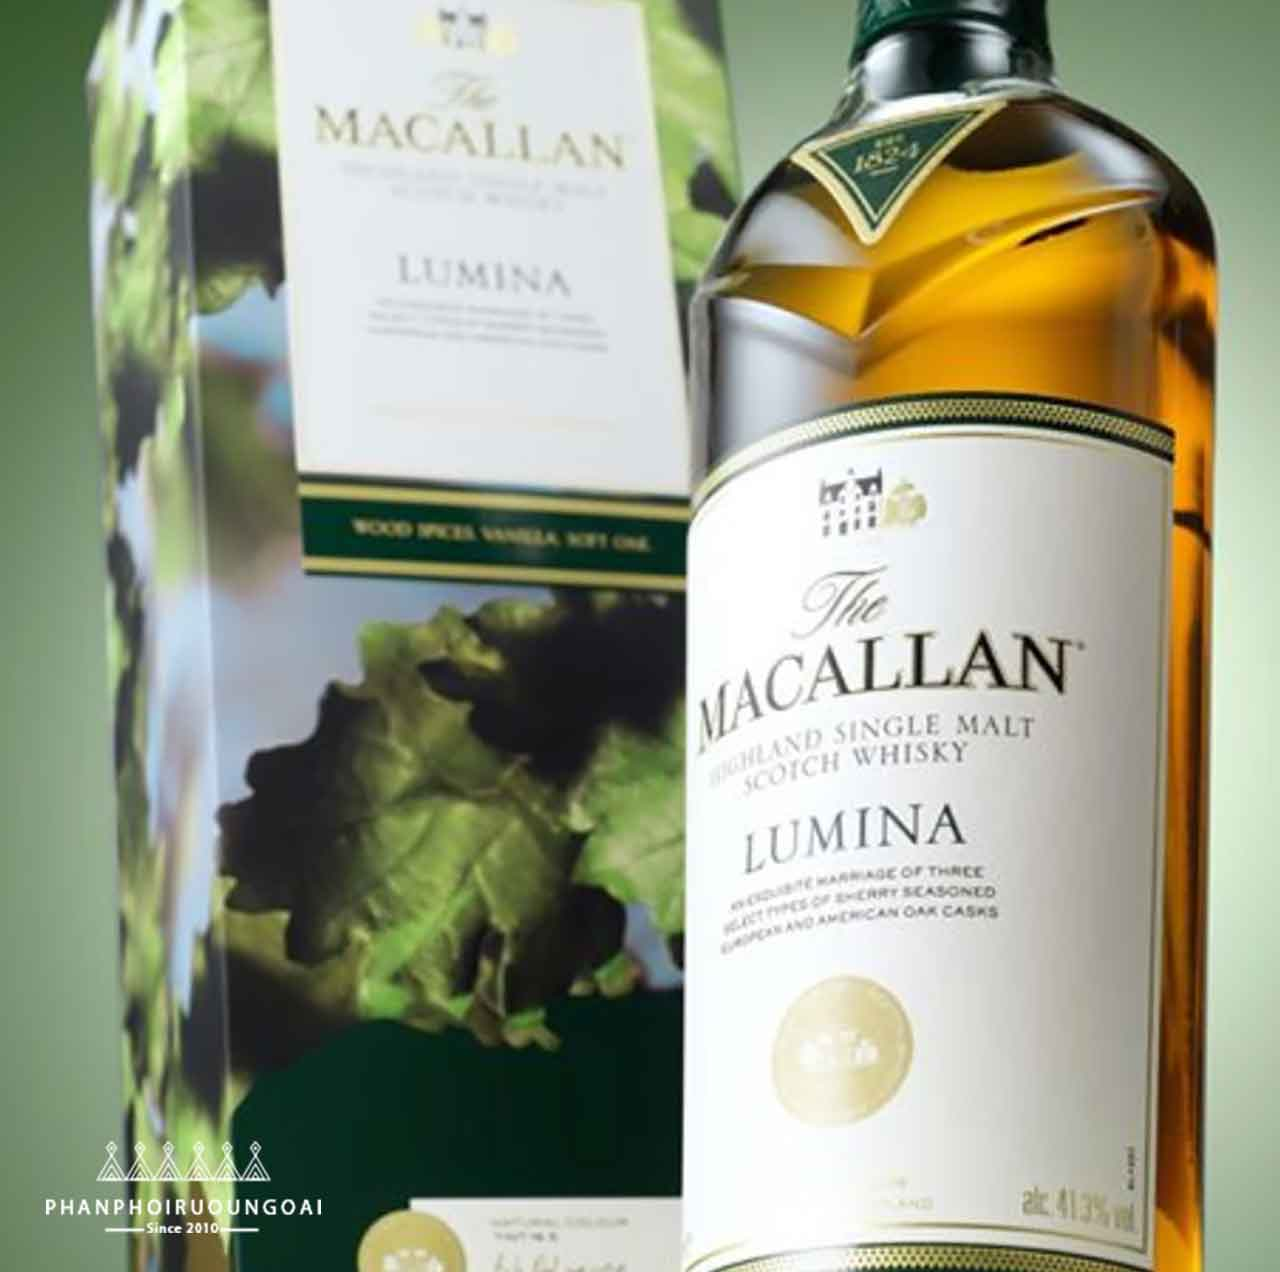 Ảnh chụp Rượu The Macallan Lumina - The Macallan Quest